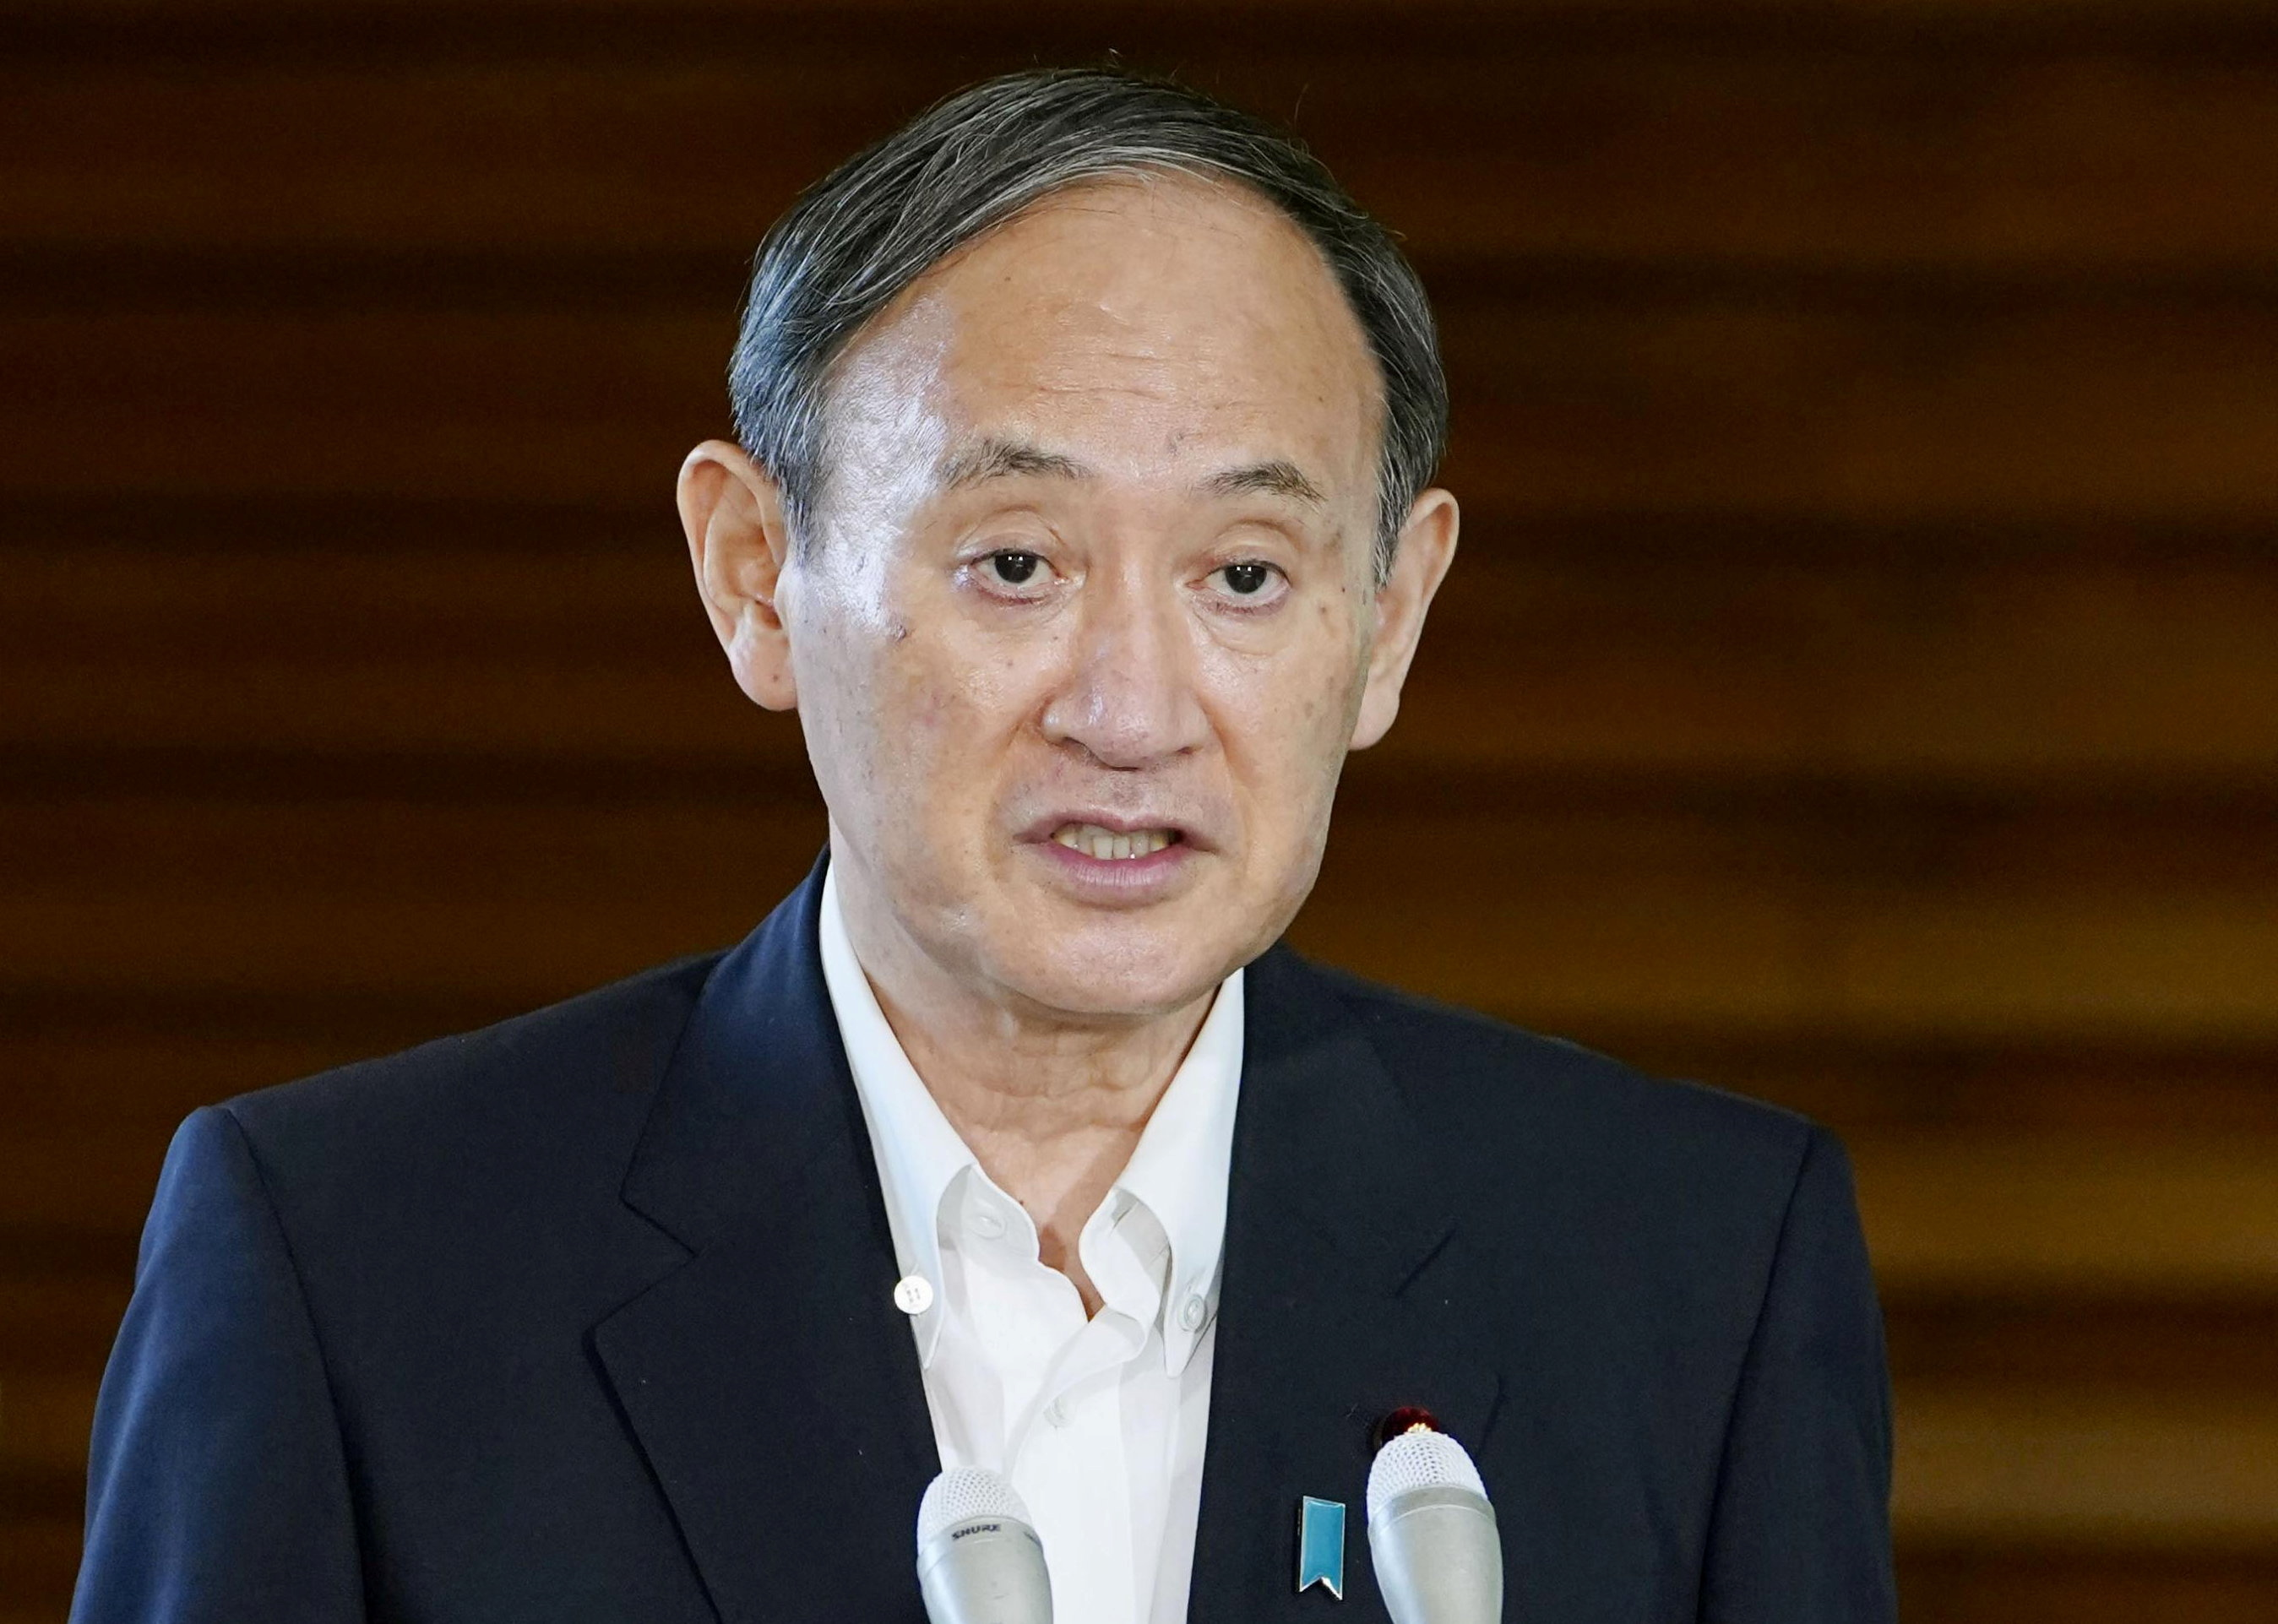 Japan's Prime Minister Yoshihide Suga speaks to media after reports on North Korea fired a pair of ballistic missiles at his official residence in Tokyo, Japan September 15, 2021, in this photo taken by Kyodo. Mandatory credit Kyodo/via REUTERS